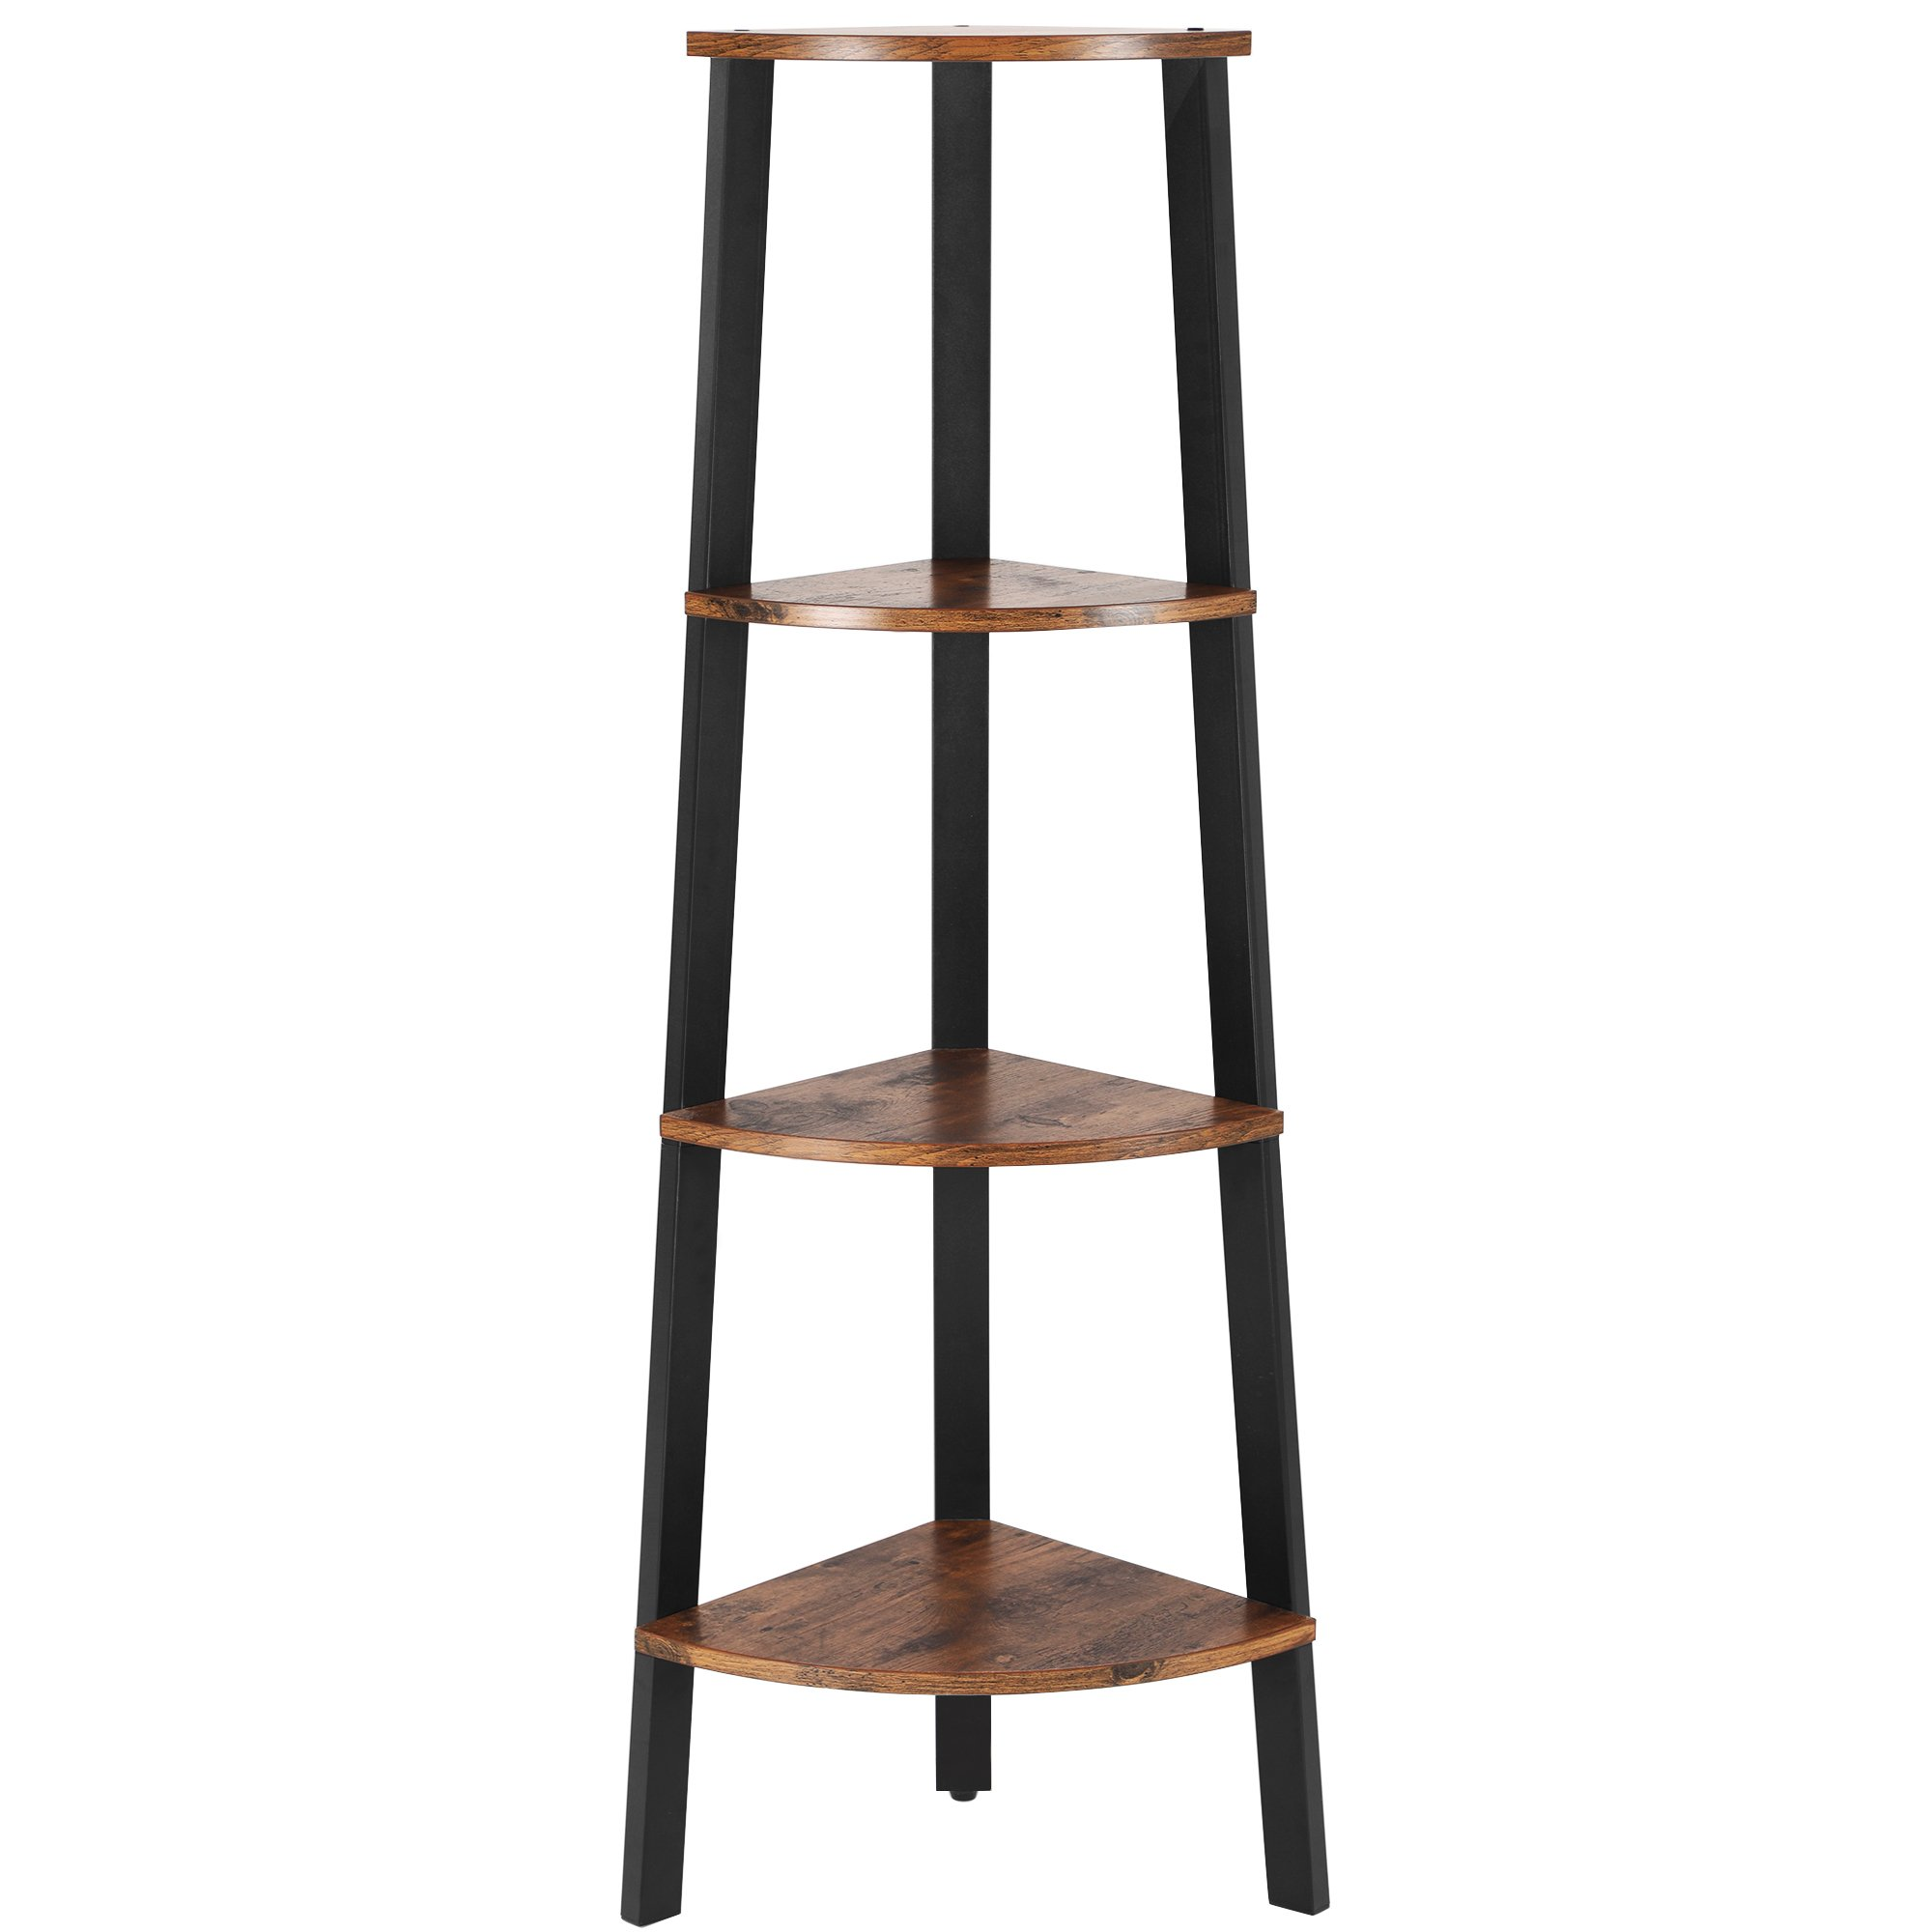 SONGMICS Vintage Corner Shelf, 4-Tier Bookcase, Storage Rack Plant Stand for Home Office, Wood Look Accent Furniture with Metal Frame ULLS34X